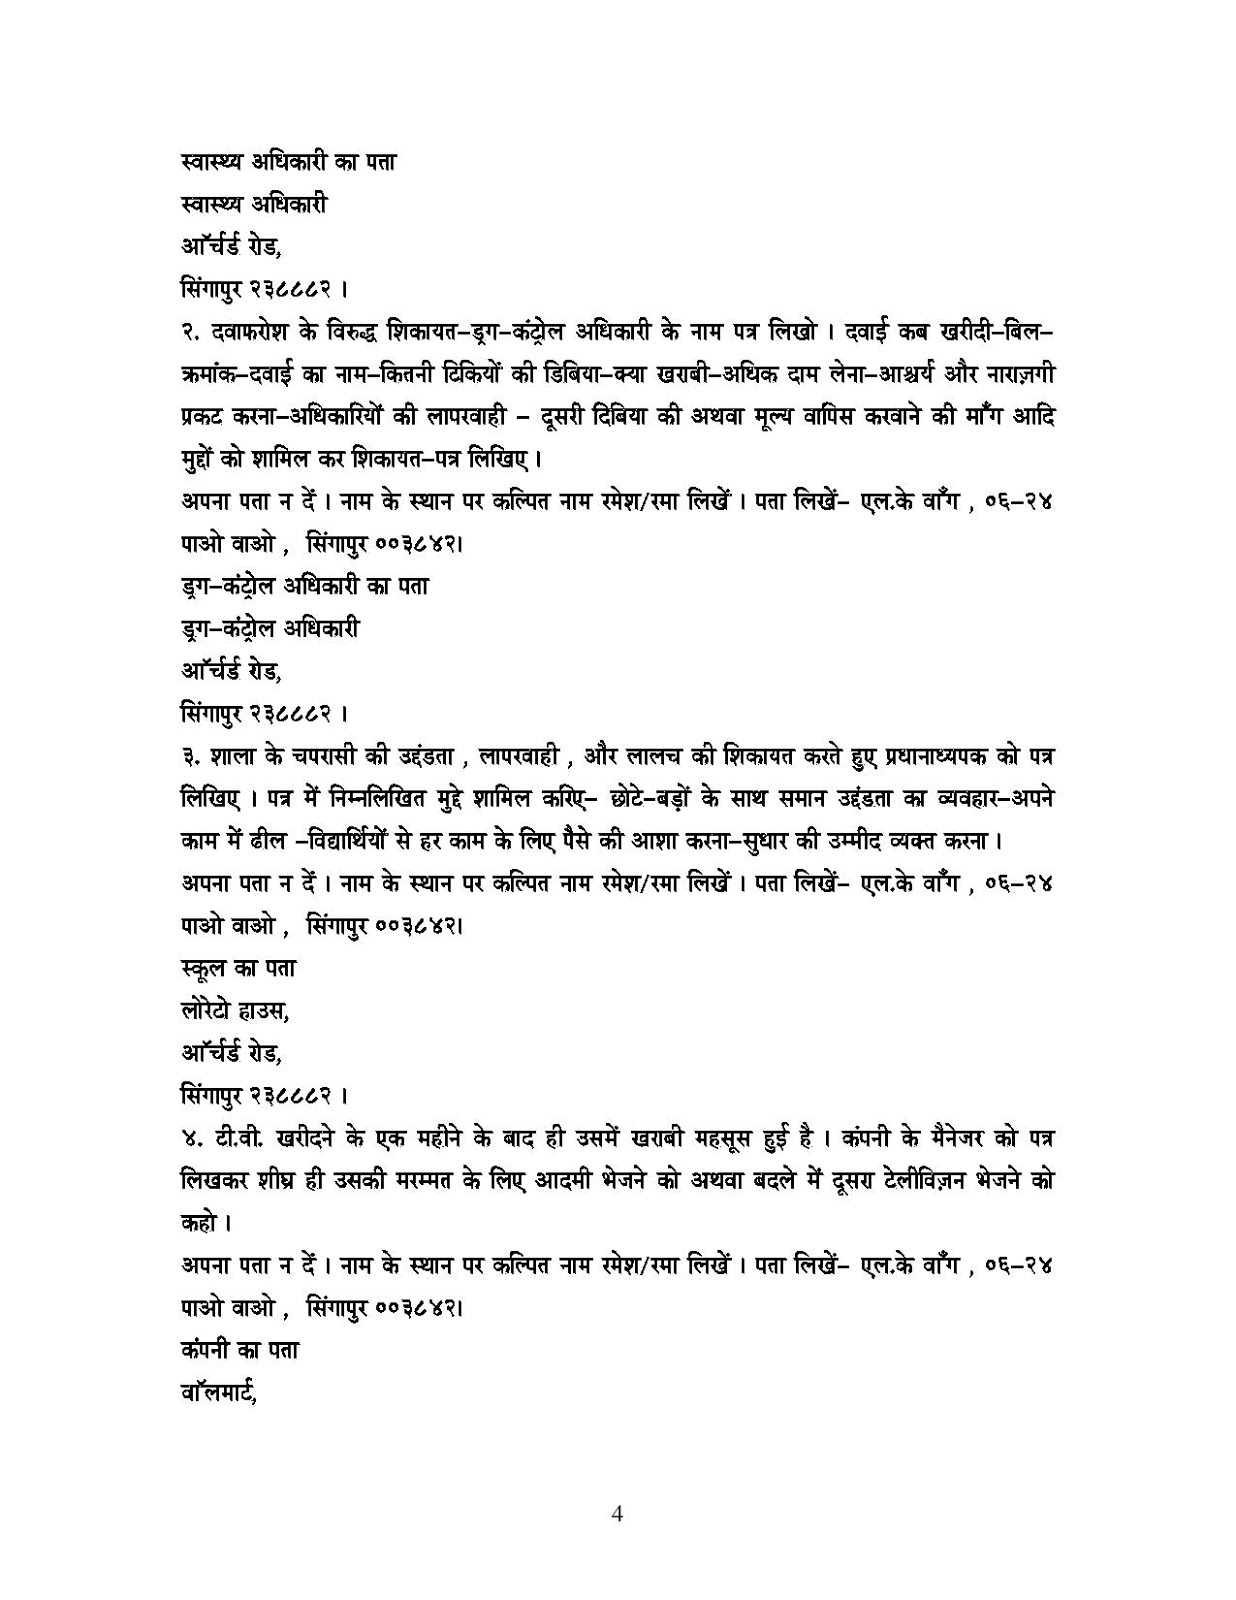 Hindi Grammar Work Sheet Collection For Classes 5 6 7 Amp 8 Letter Writing Work Sheet For Igcse